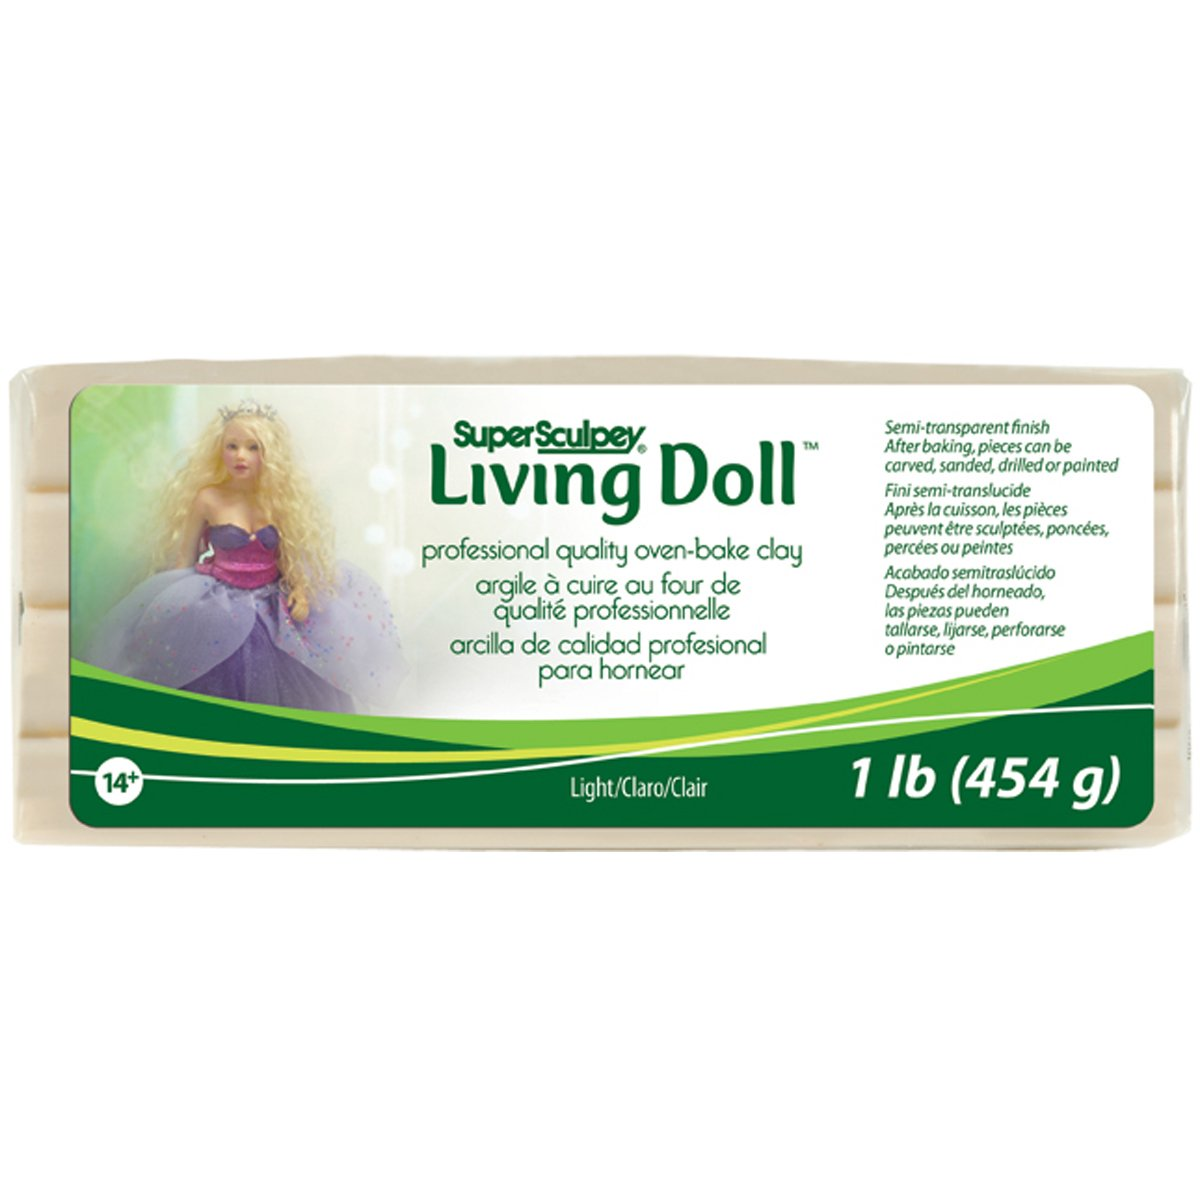 Brand New Super Sculpey Living Doll Clay 1lb-Light Brand New